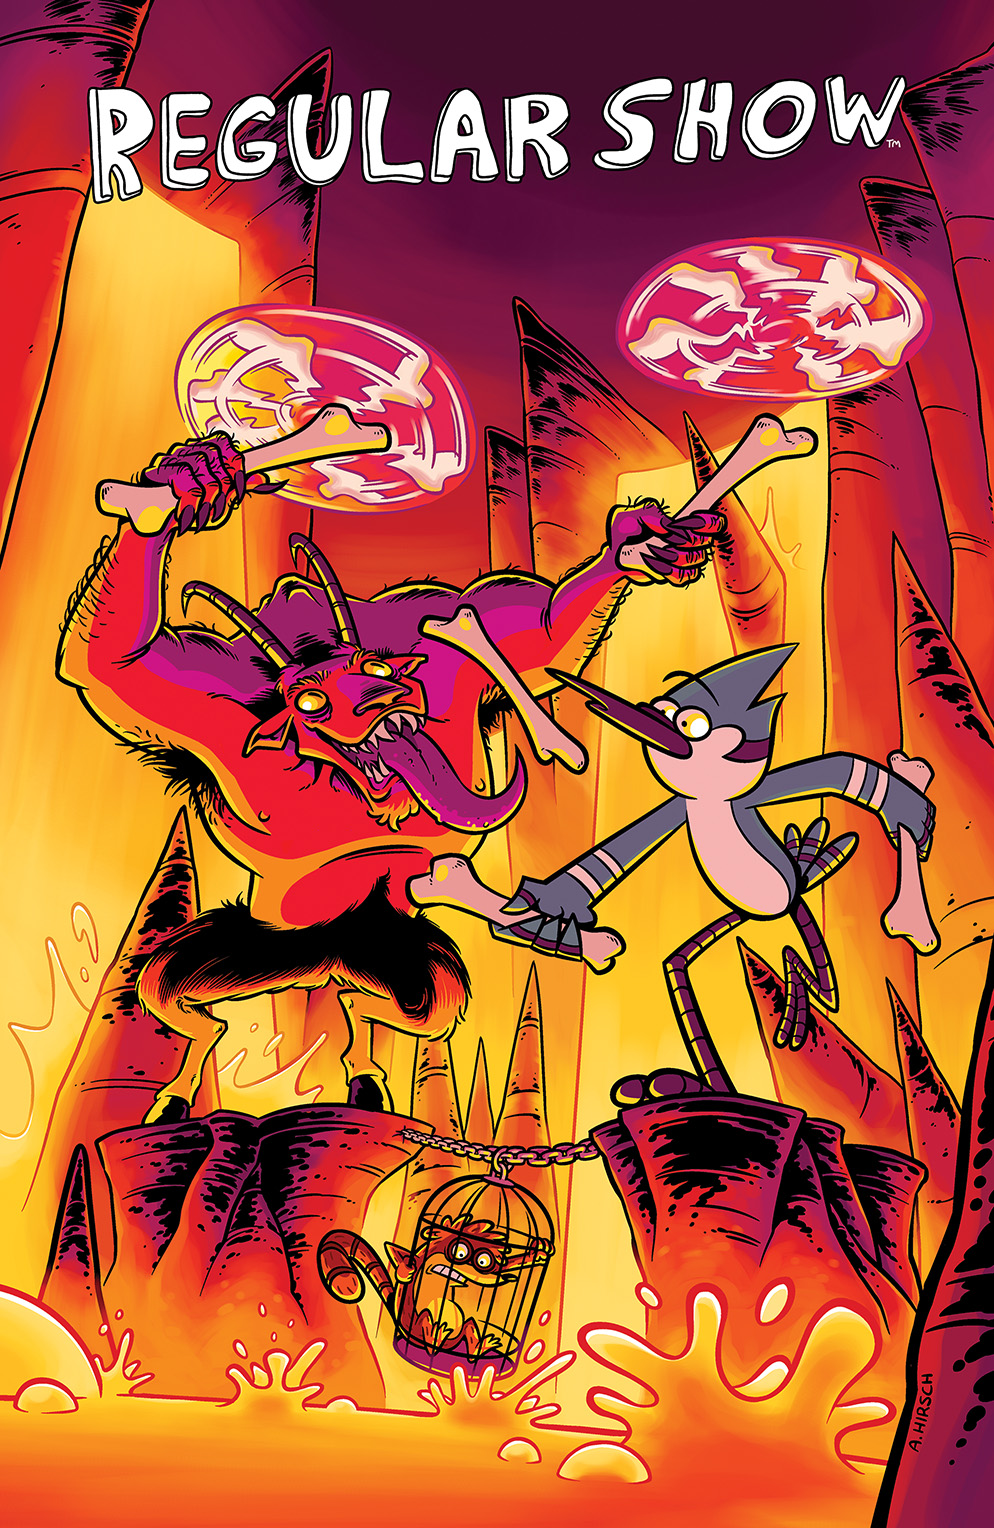 REGULAR SHOW #16 Cover A